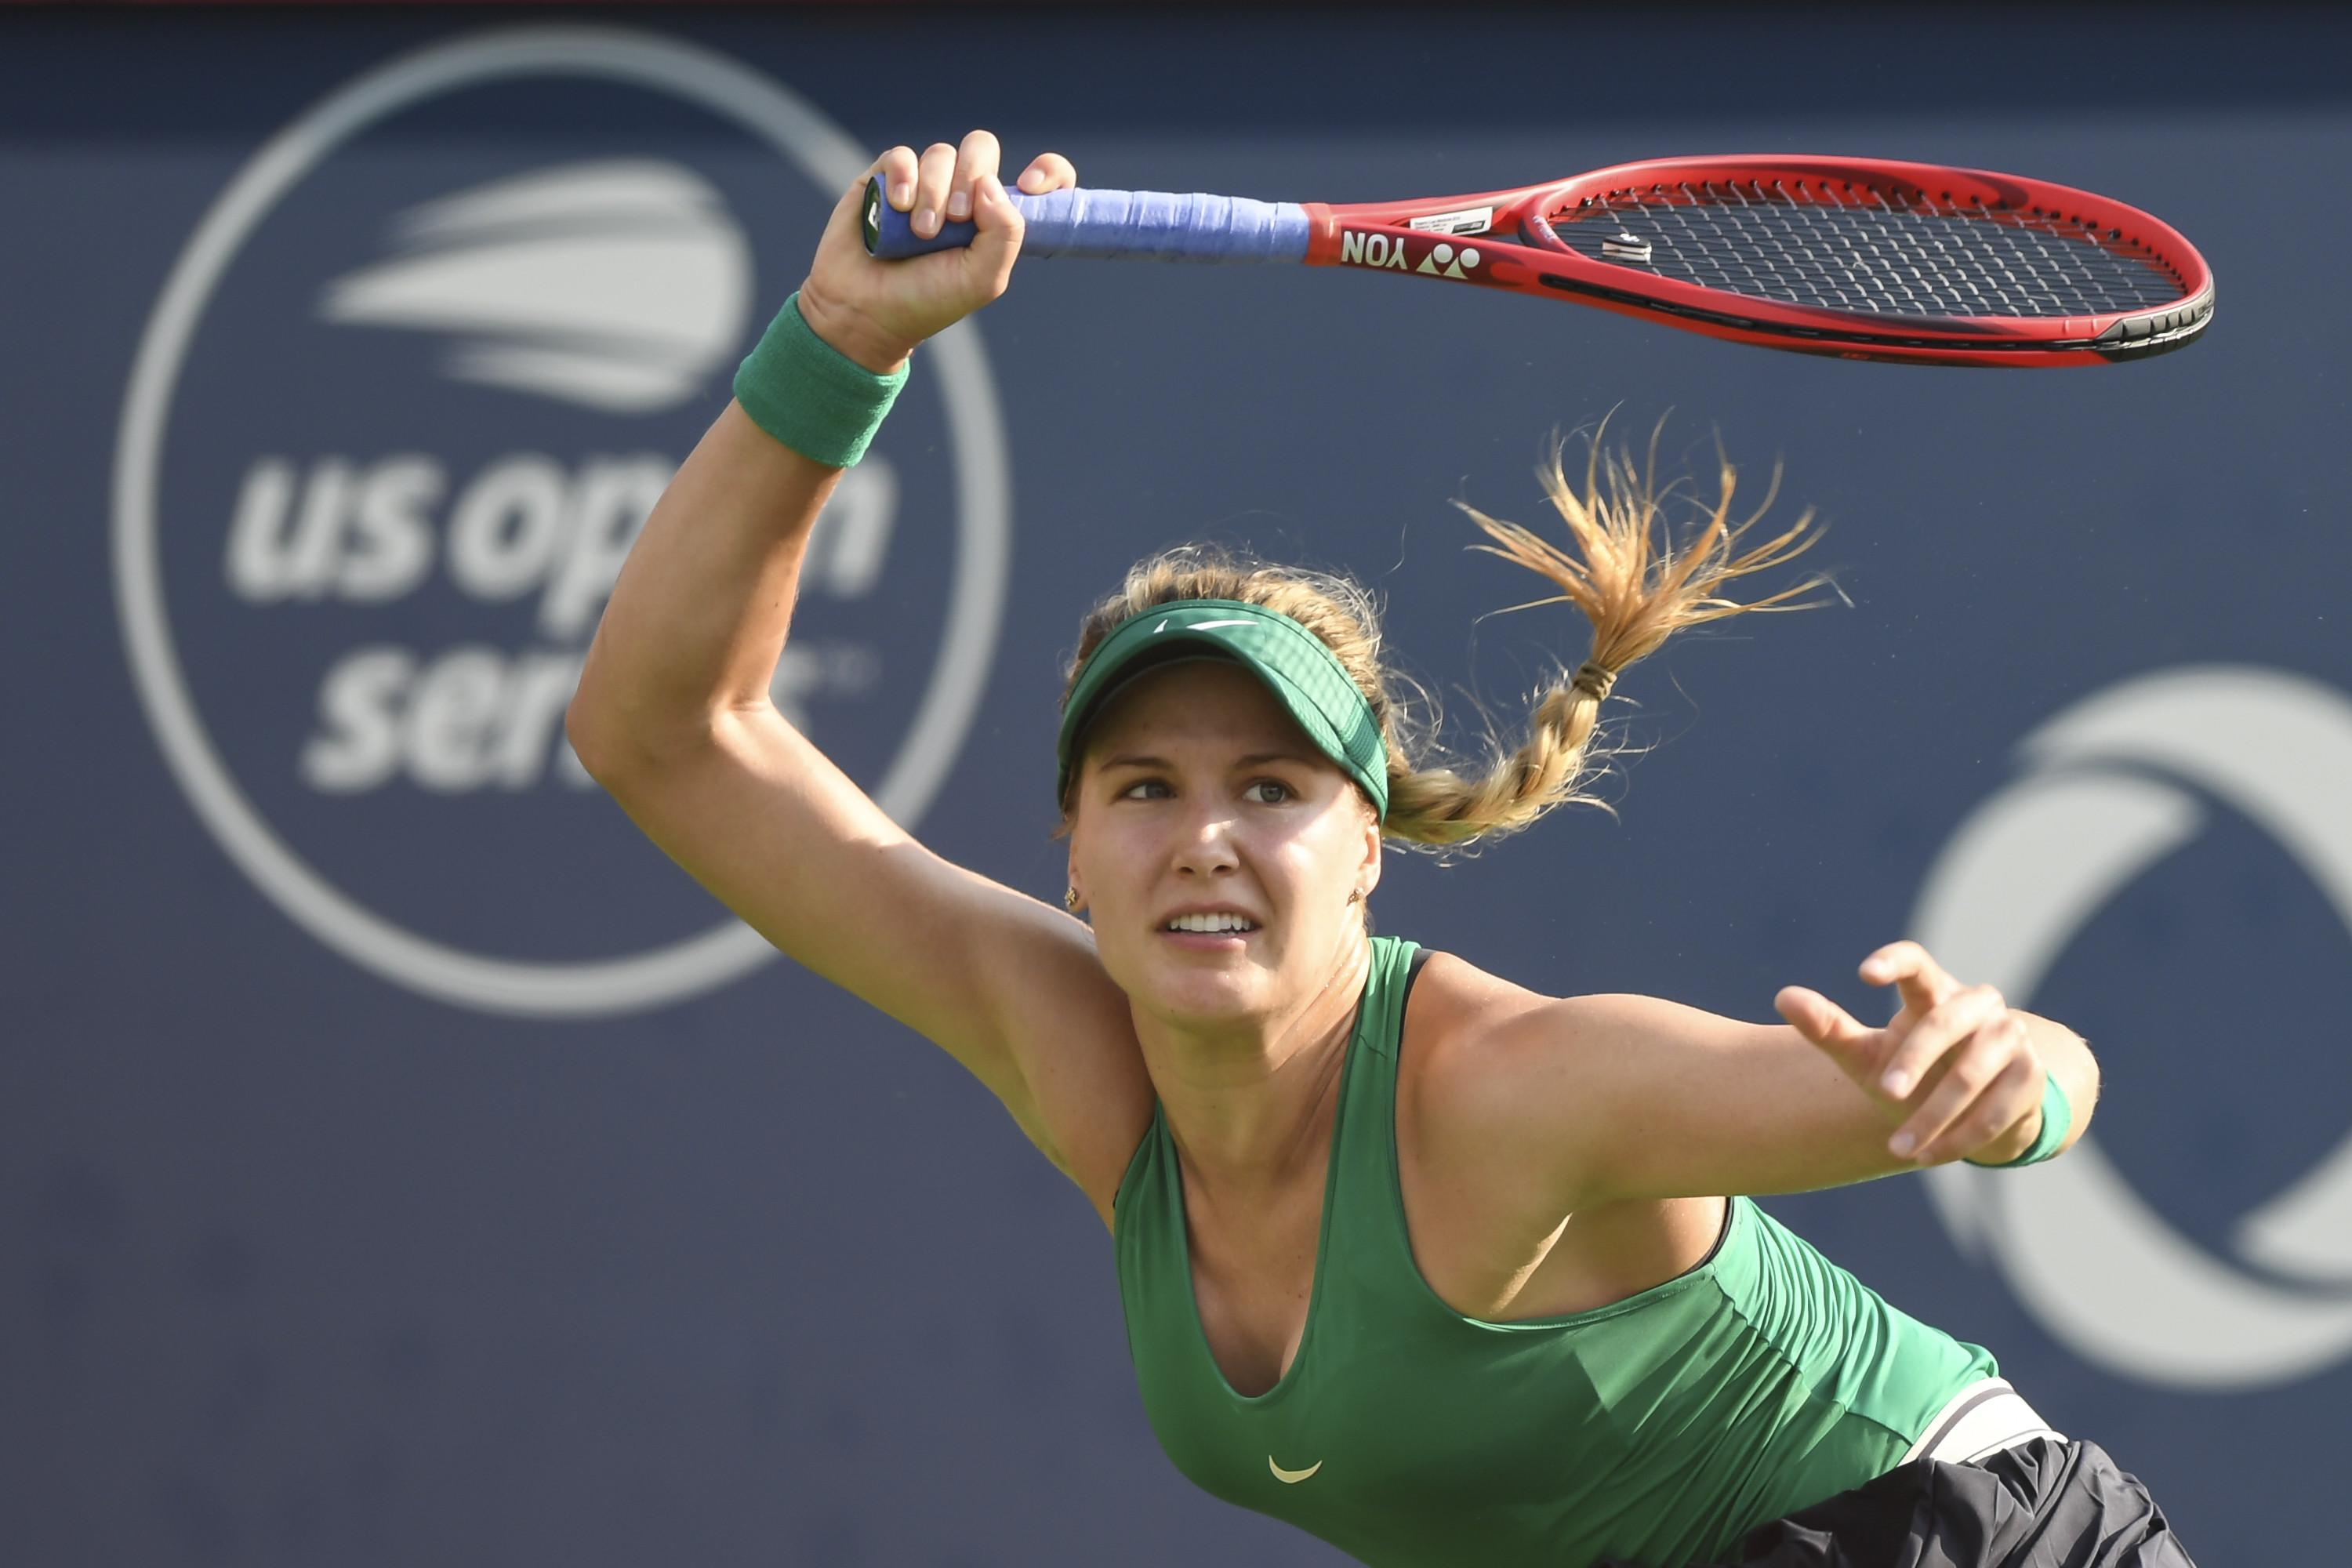 Eugenie Bouchard had earlier beaten the top seed at the Vancouver Open